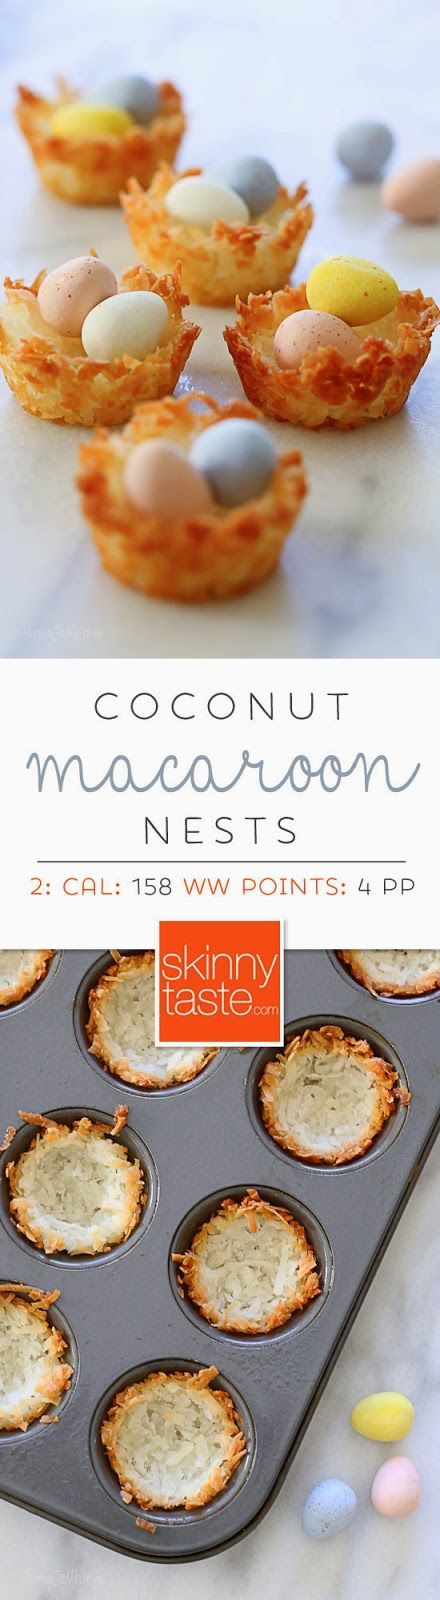 Coconut Macaroon Nests - perfect for Easter! | Skinnytaste